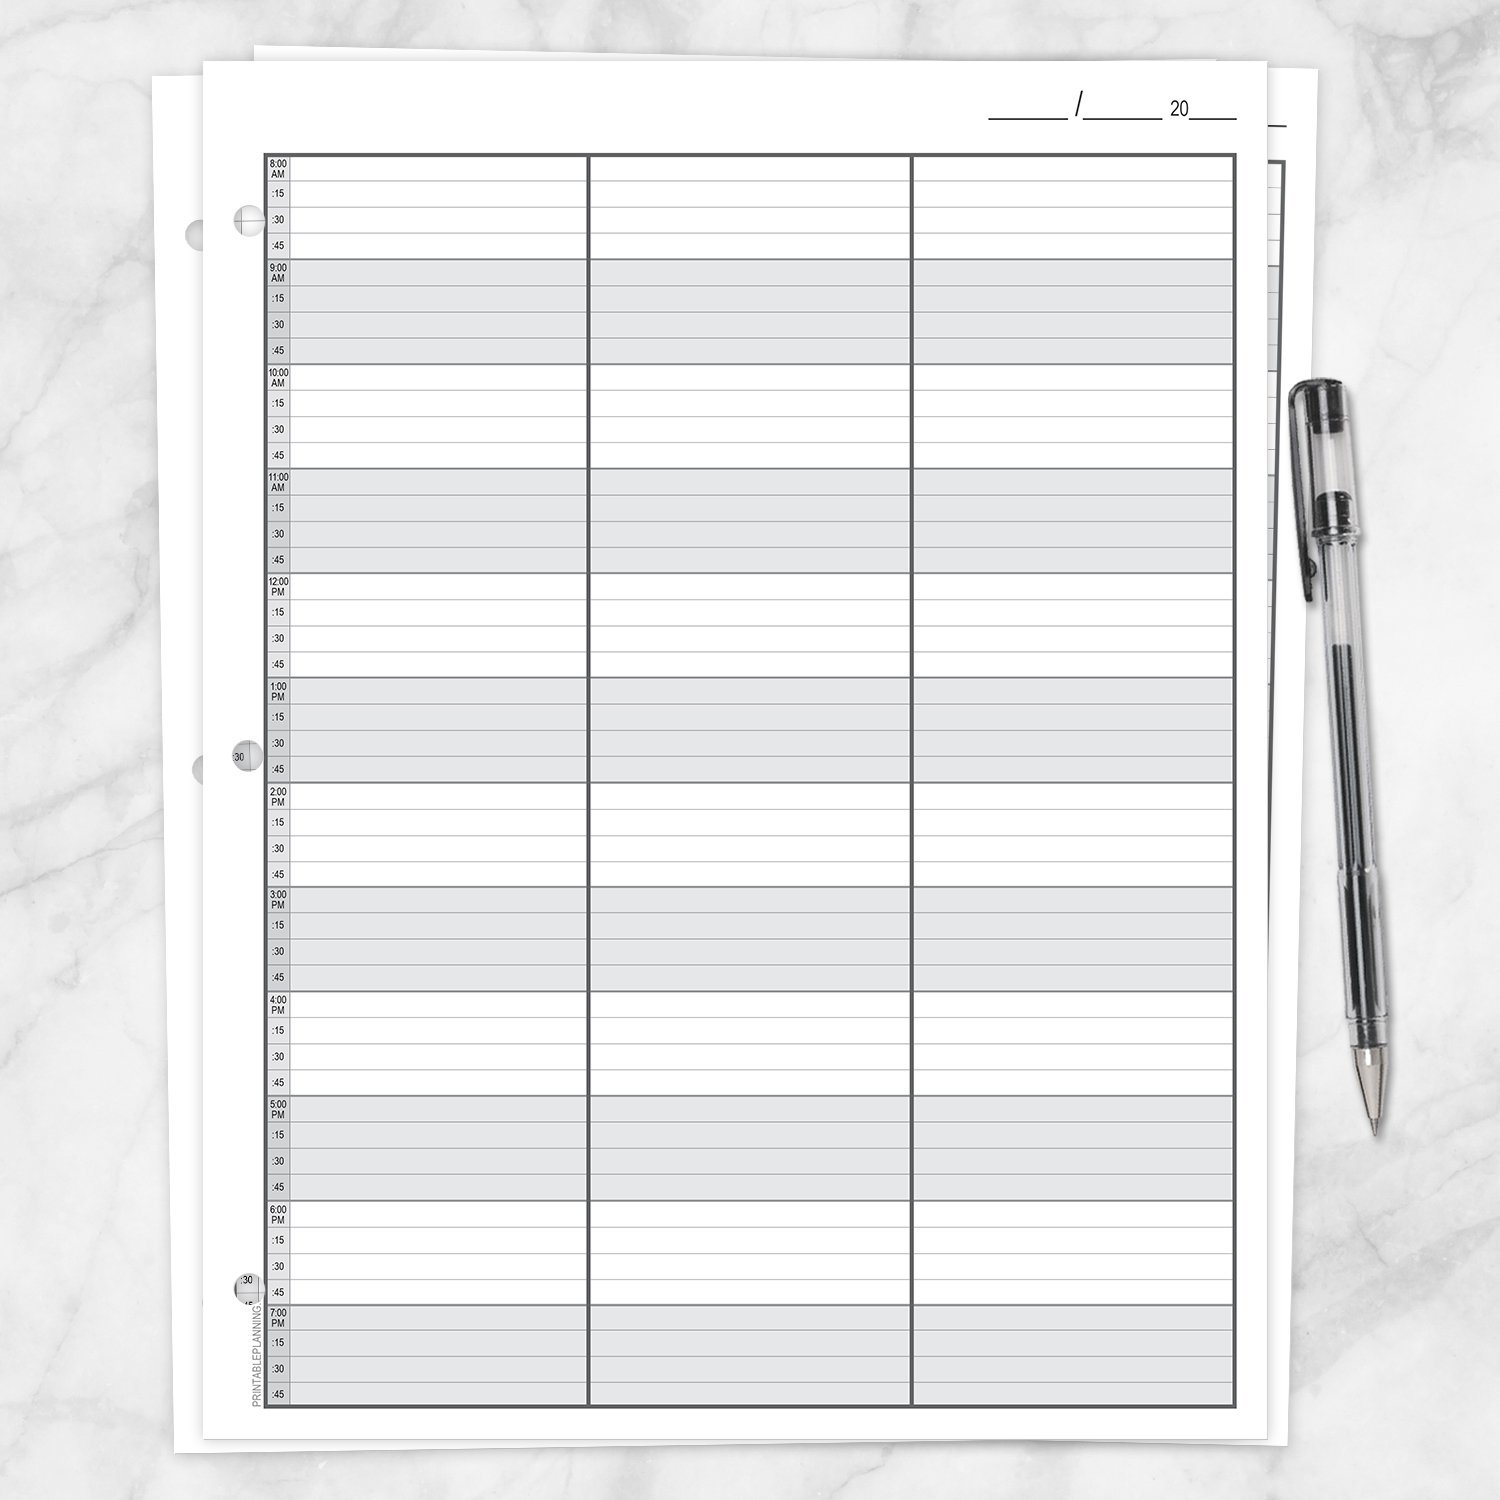 Schedule Sheet In 15 Minute Increments, Front And Back - Printable At Printable Planning For